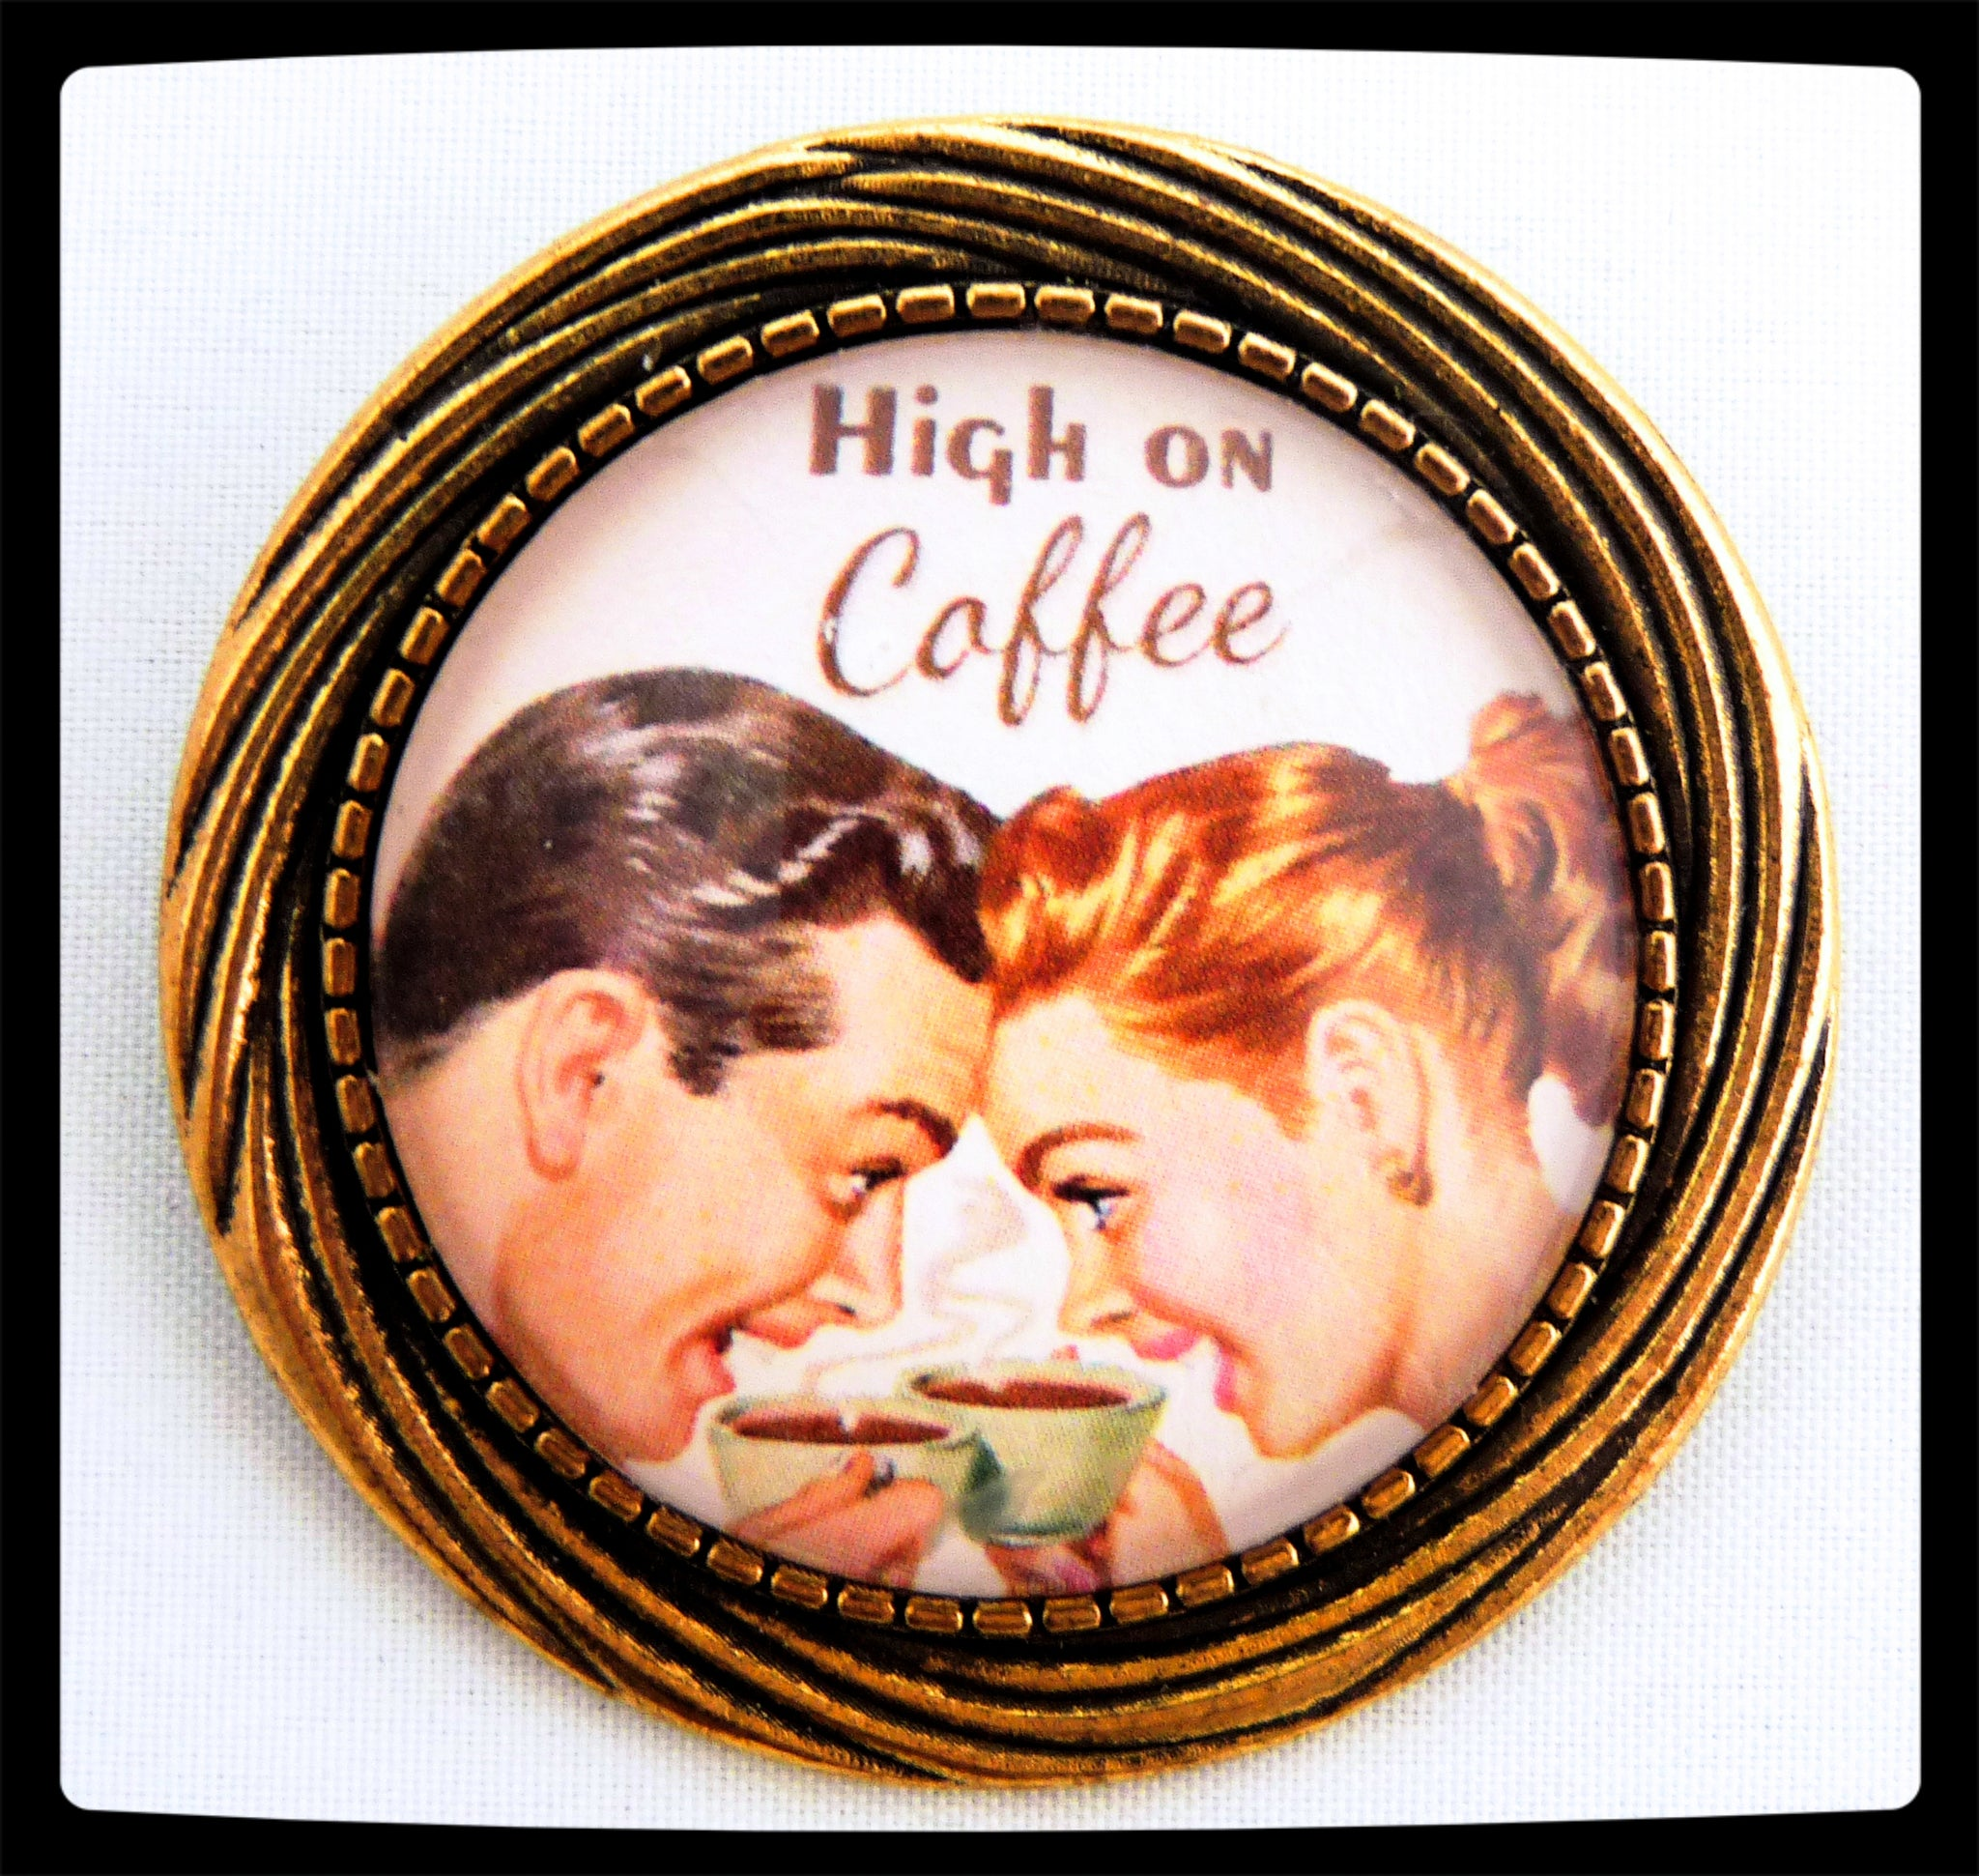 The High on Coffee brooch is a one of a kind, retro styled brooch.